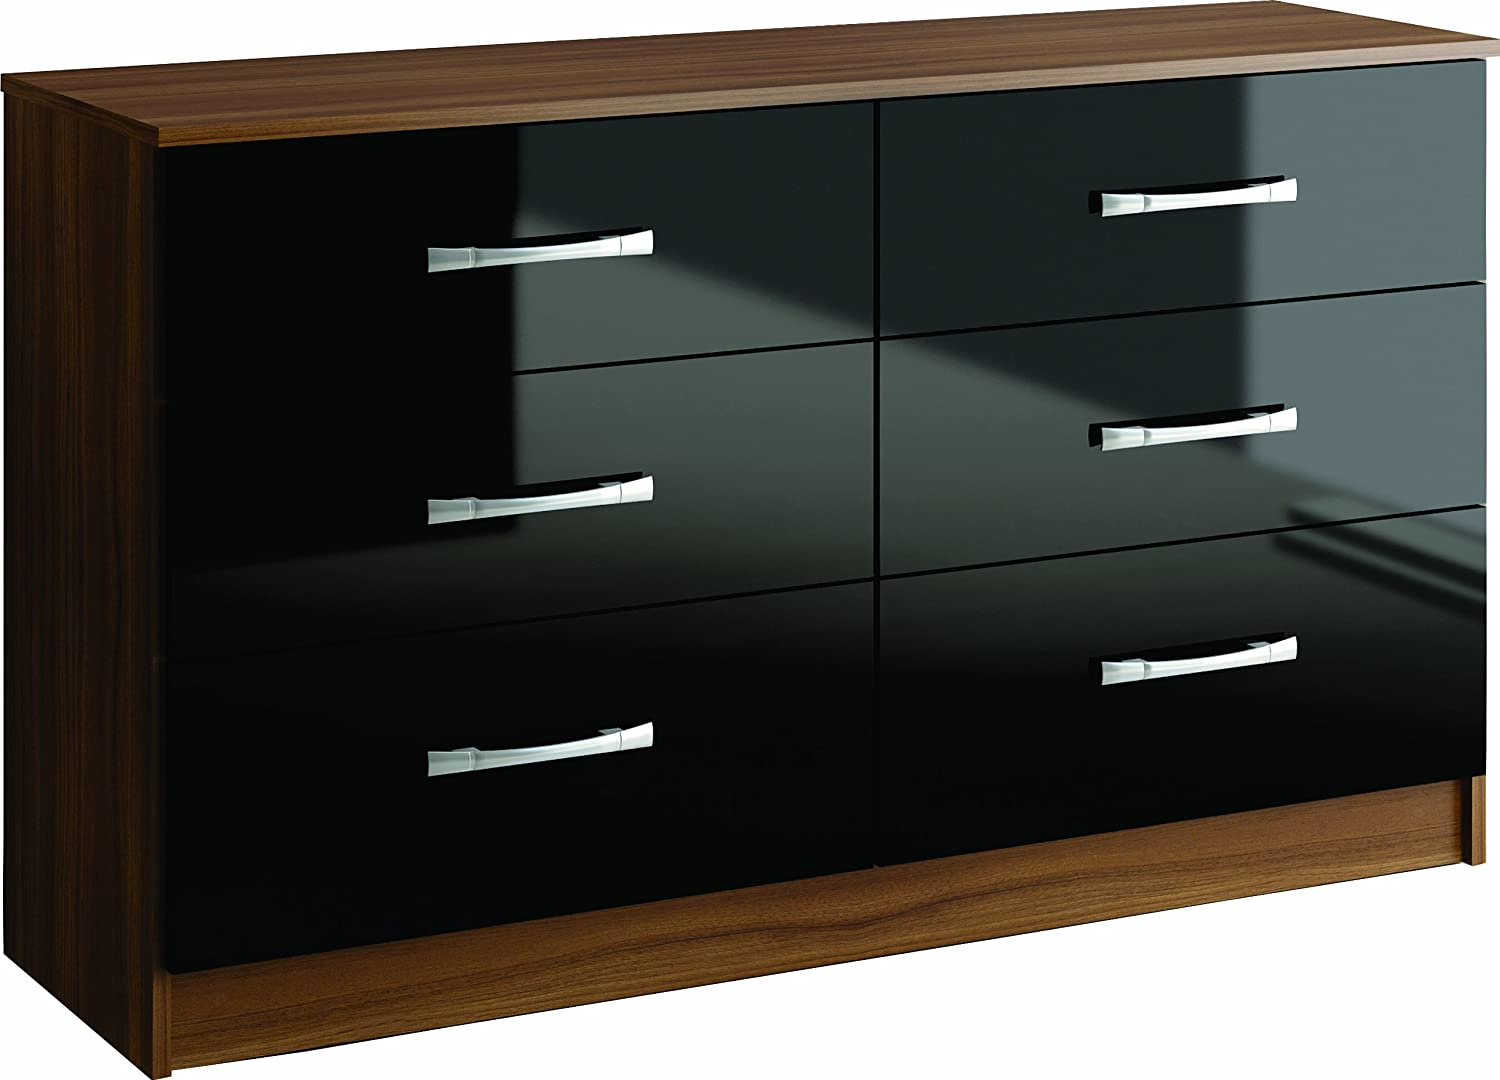 Birlea Lynx 6-Drawer Chest - High Gloss, Black Birlea Furniture Ltd LYNCH6BLK